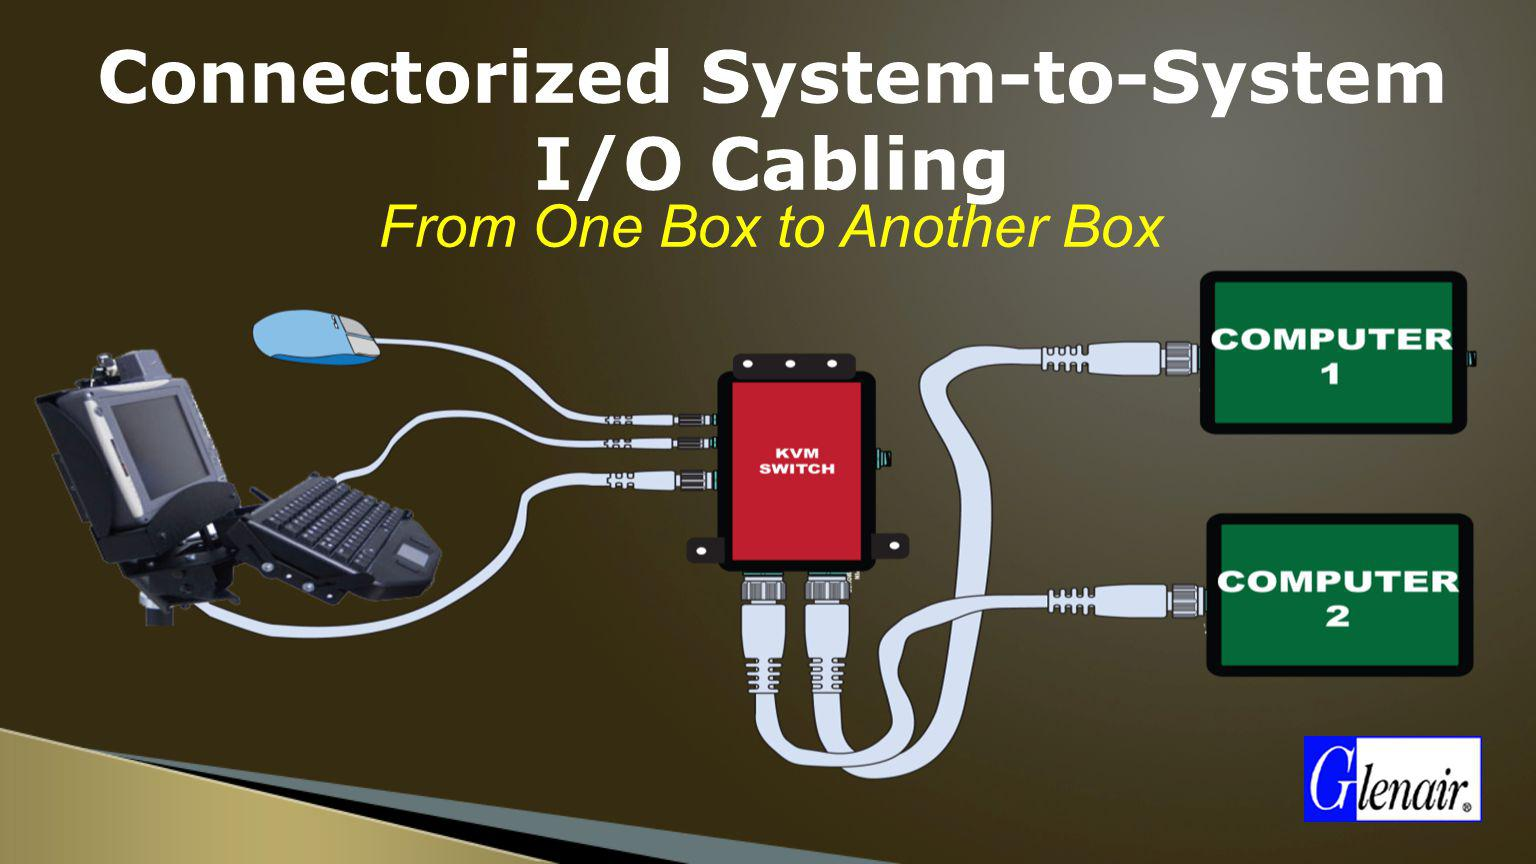 Connectorized System-to-System I/O Cabling